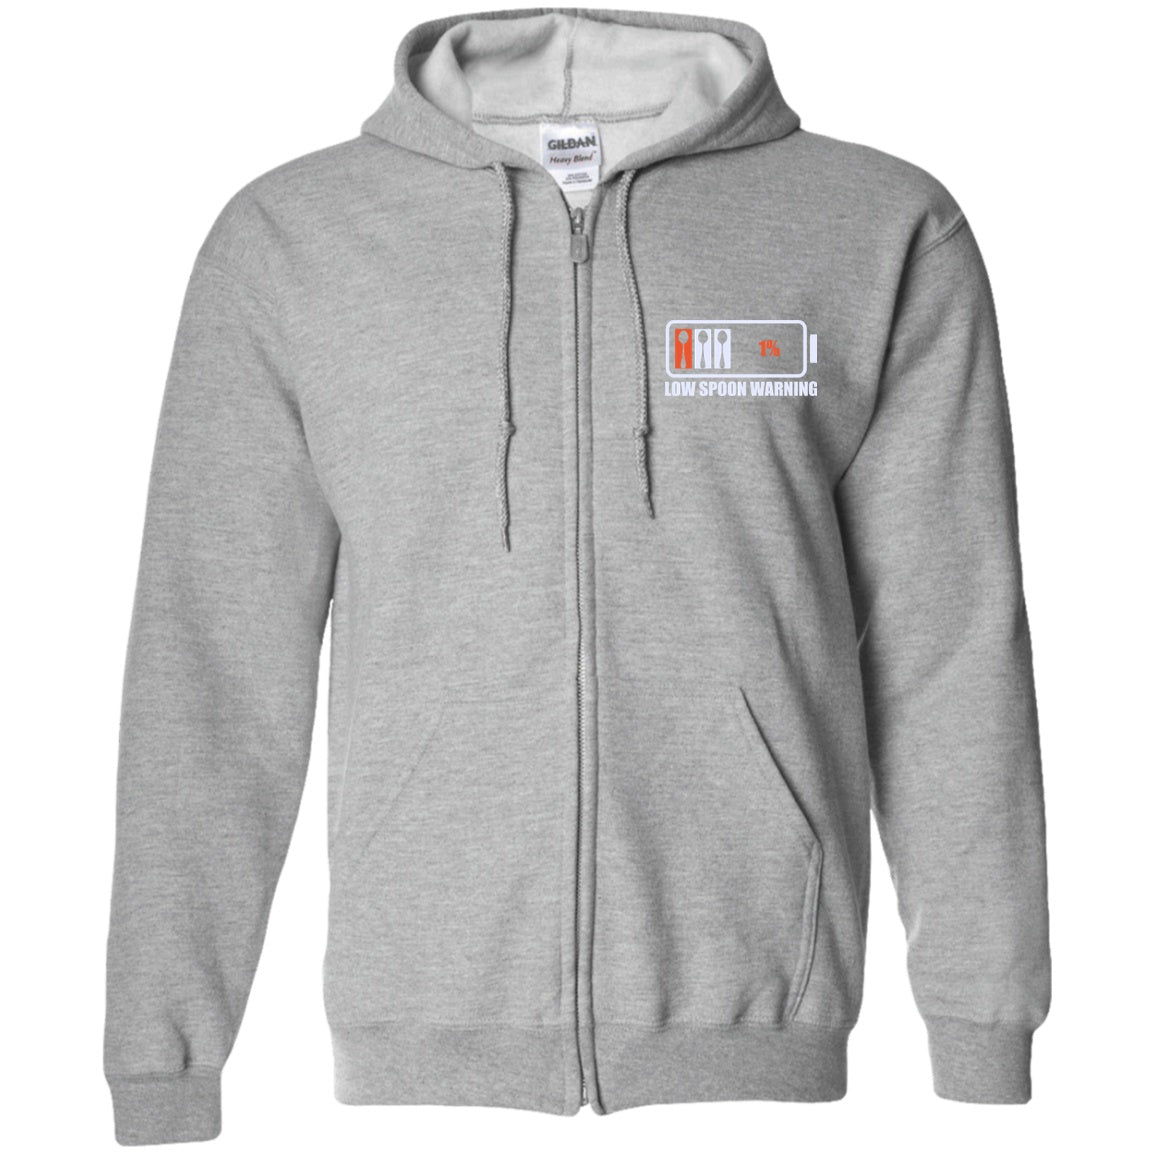 Sweatshirts - Low Spoon Warning Zip Up Hooded Sweatshirt